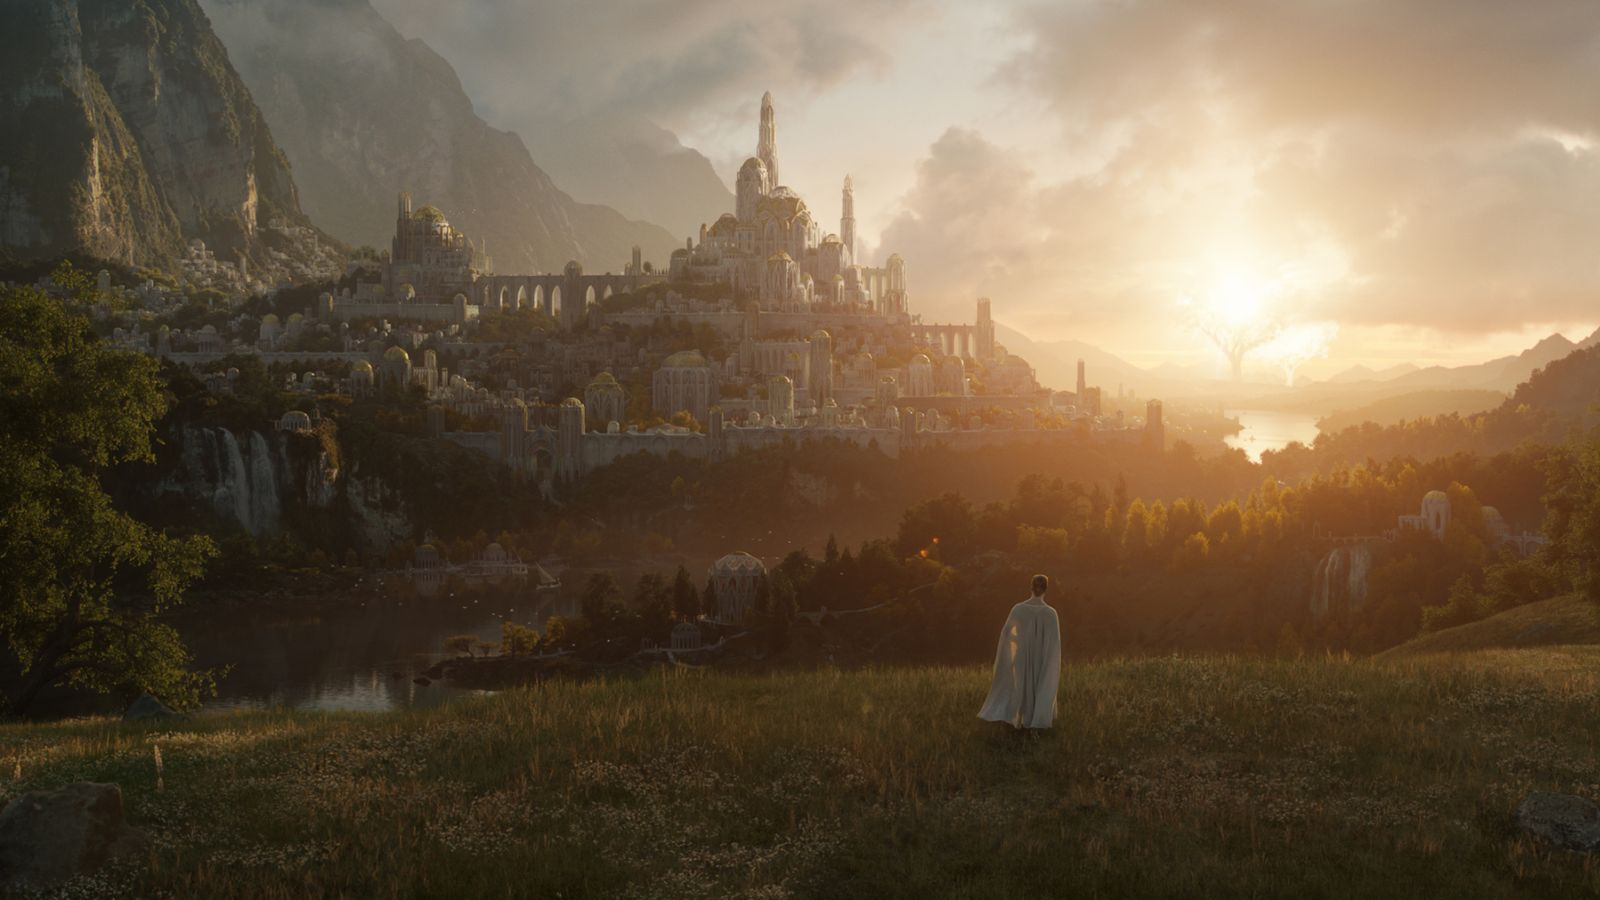 Amazon's UK-Based 'Lord of the Rings' + More Greenlit and Casting Soon